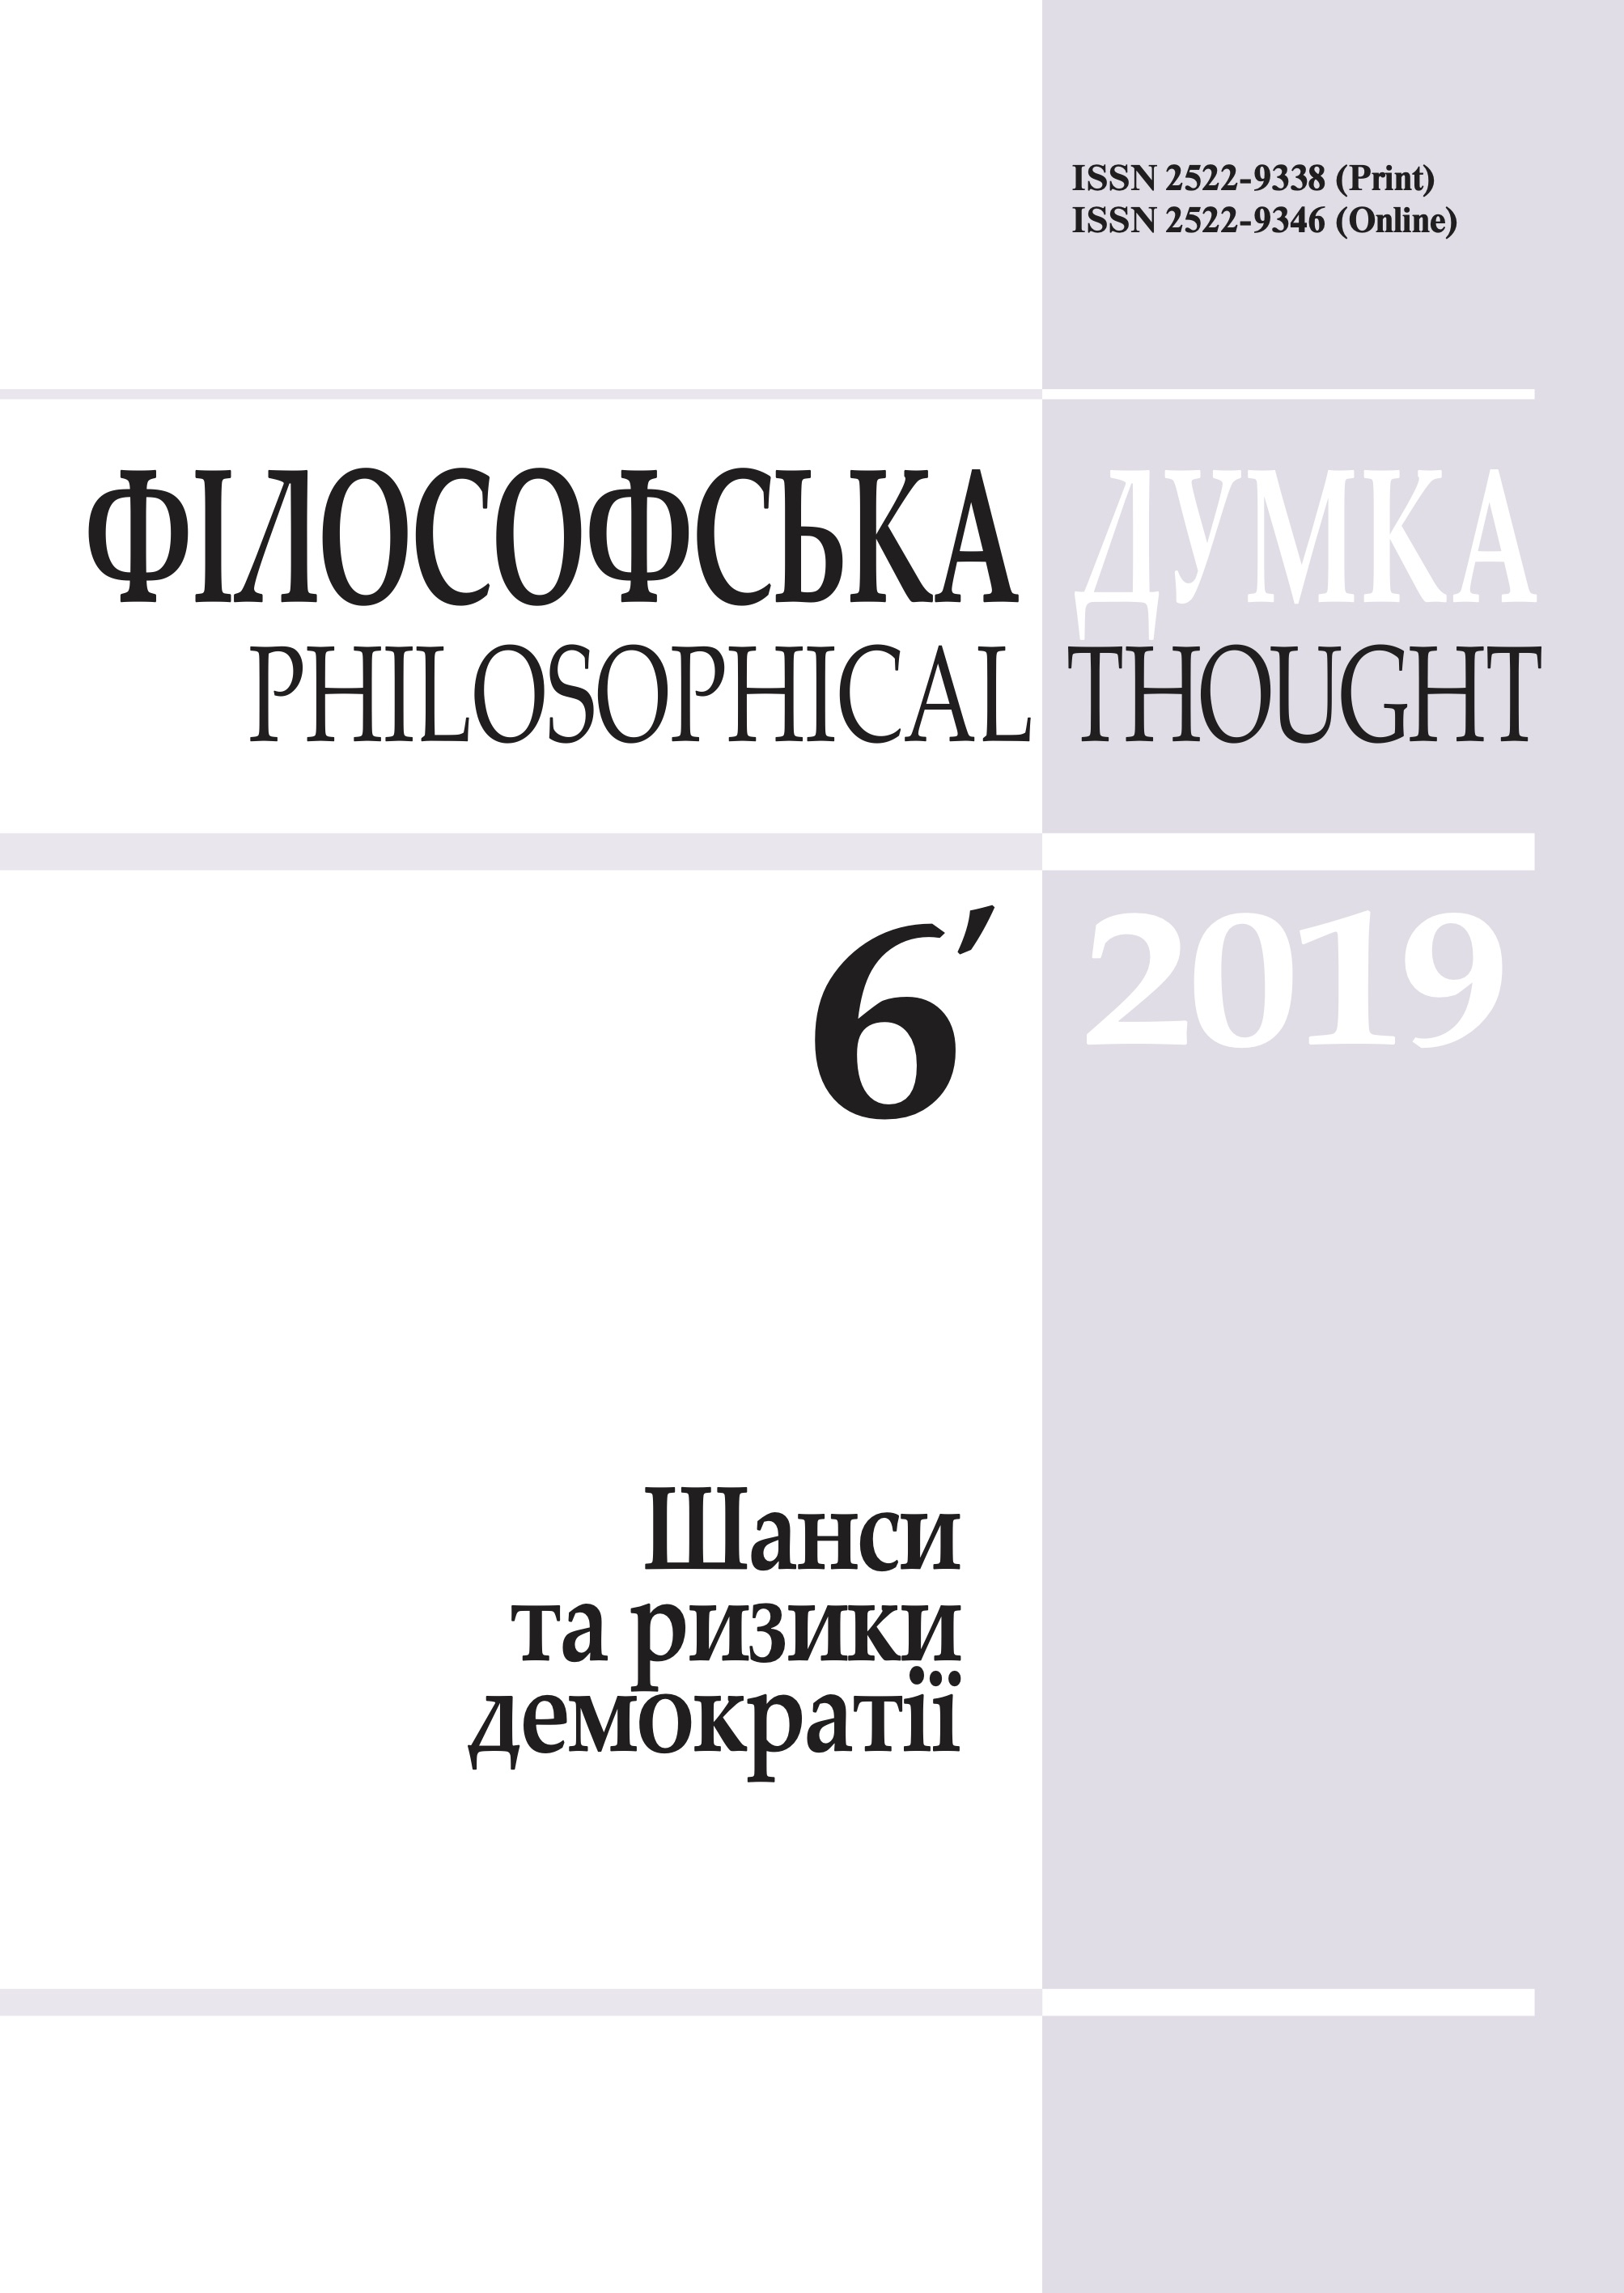 View No. 6 (2019): Philosophical thought